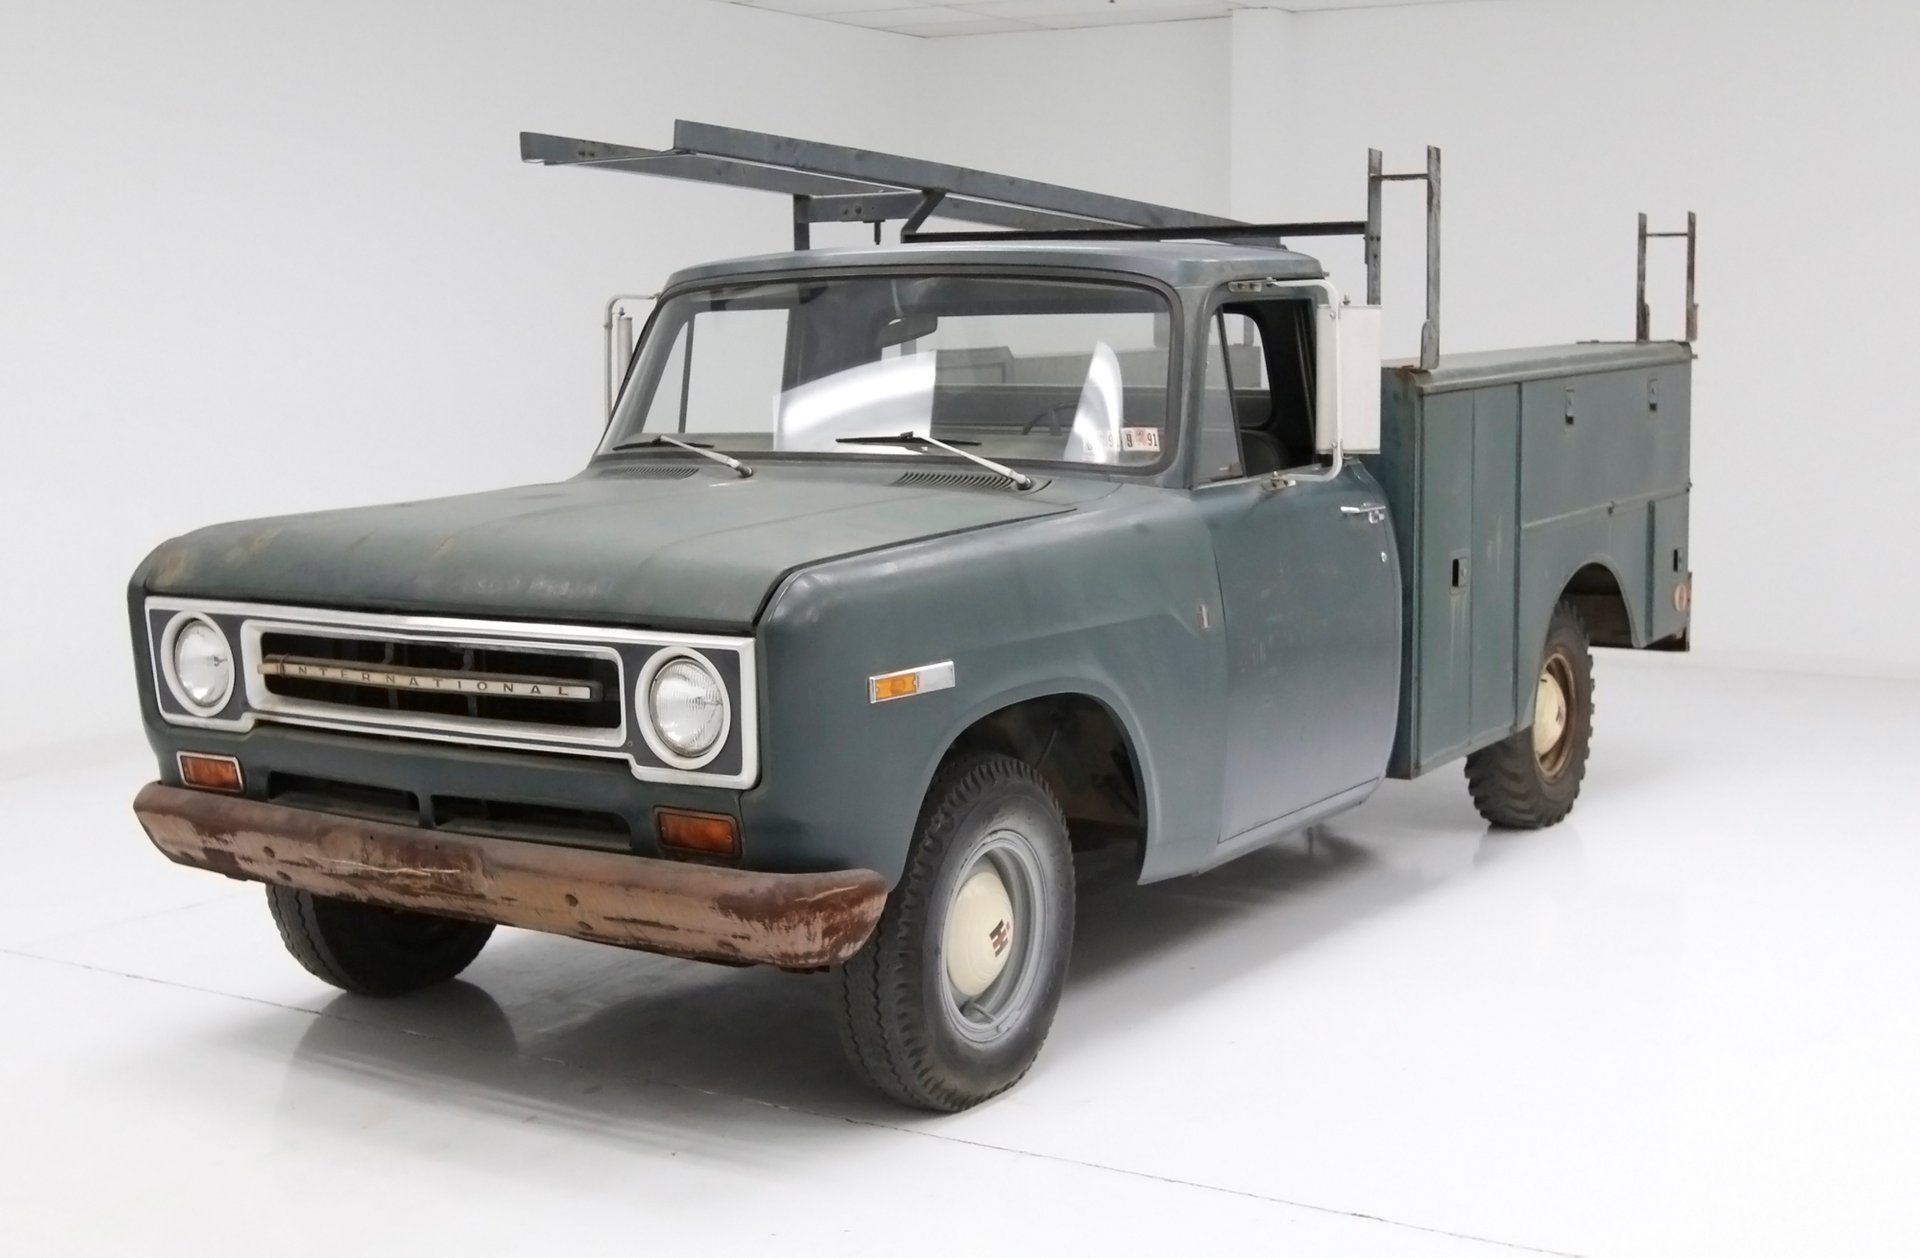 1970 International Pickup Truck